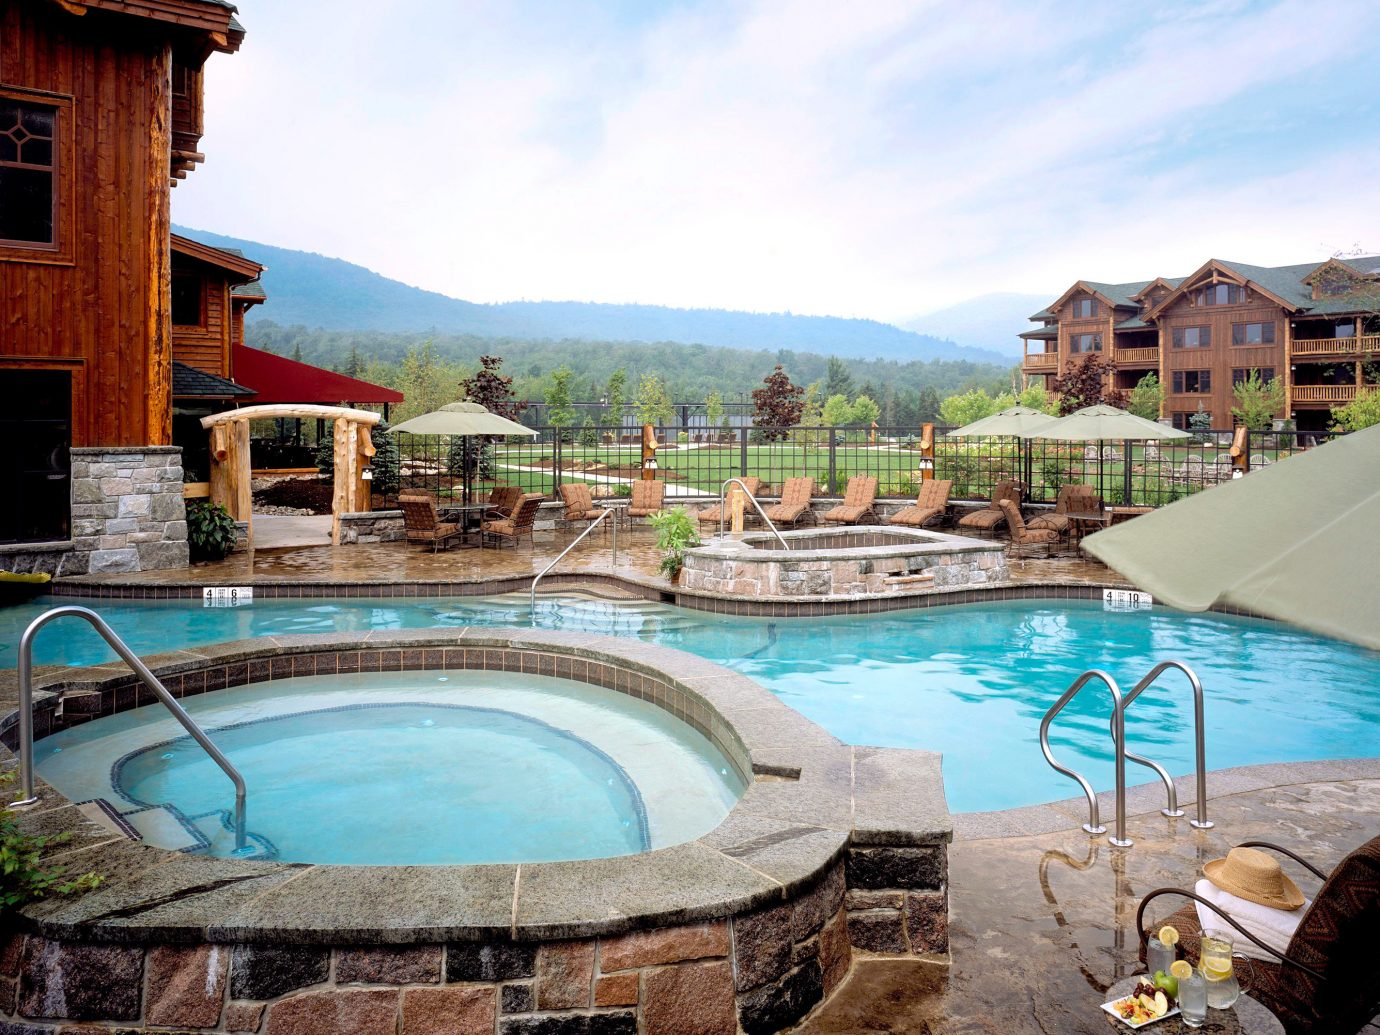 The Most Romantic Hotels in Upstate New York | Jetsetter